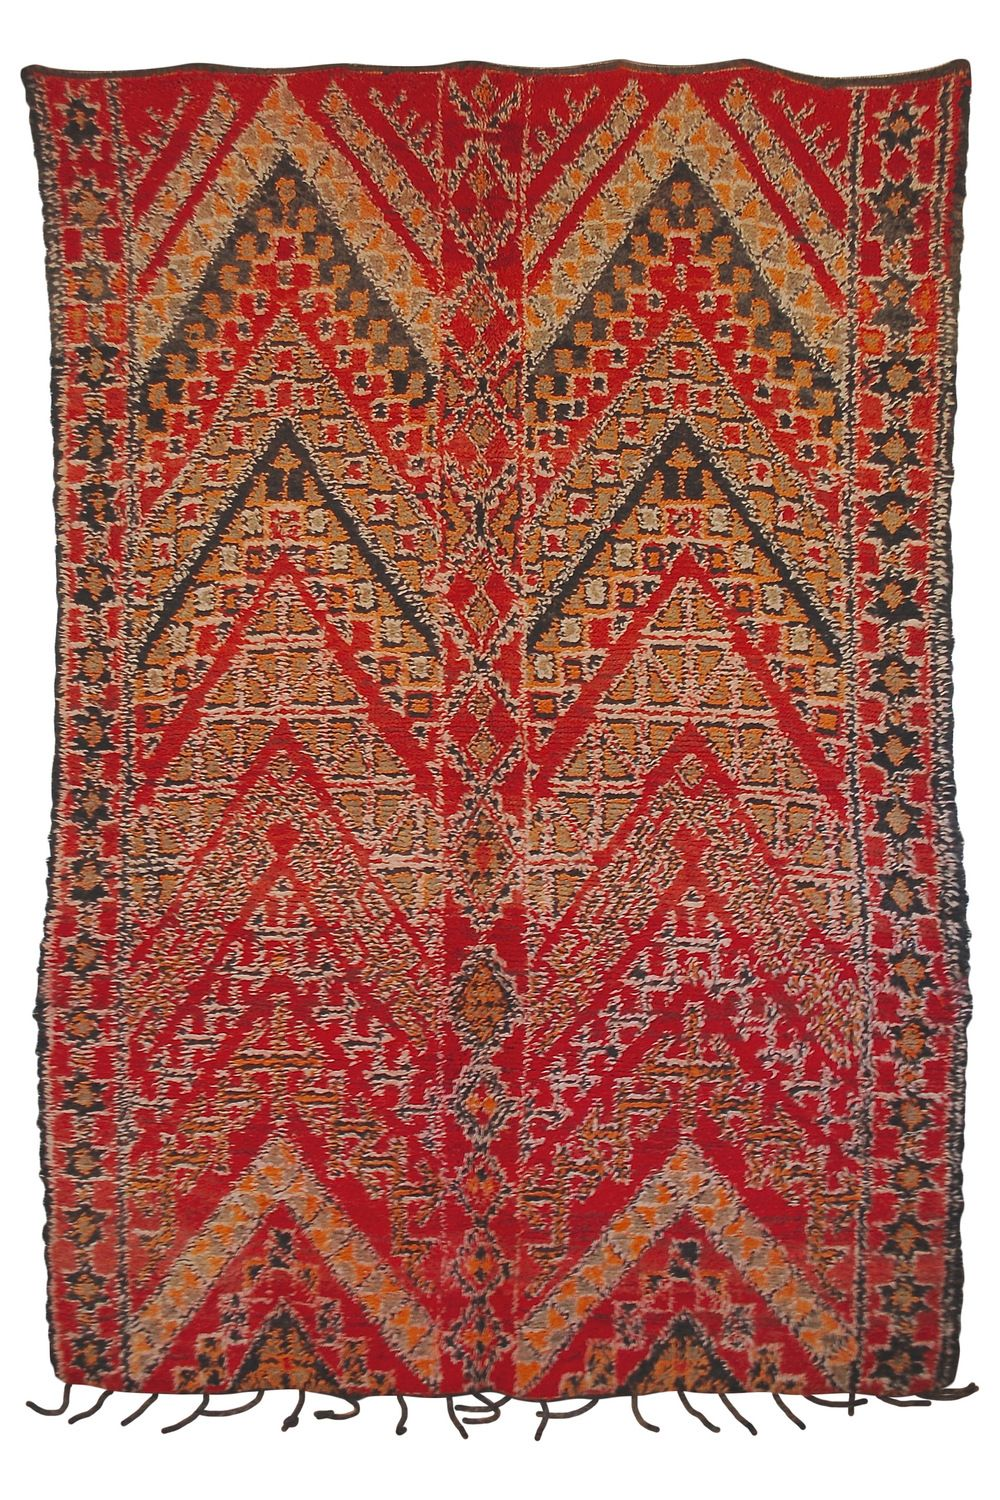 Just stunning vintage moroccan carpet with huge zig zag pattern